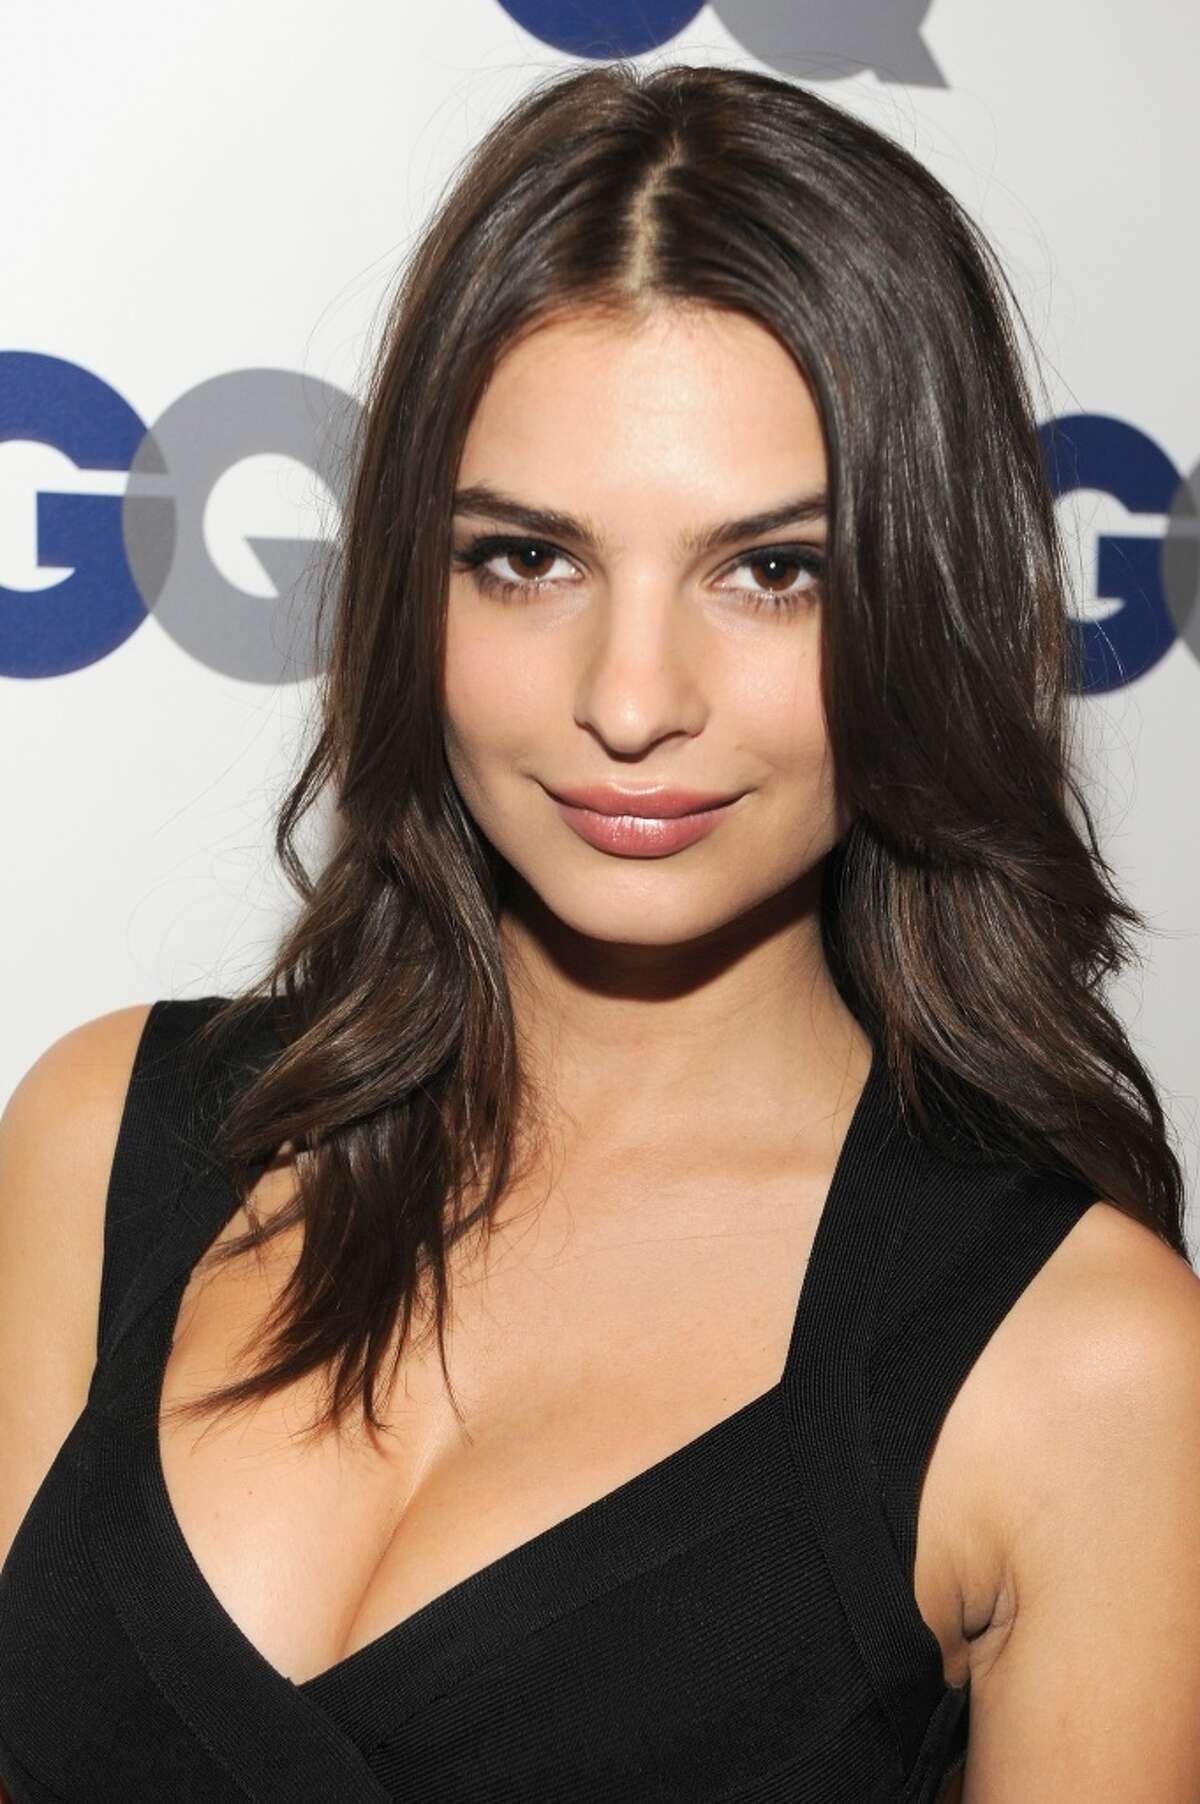 Emily Ratajkowski, a.k.a. That Girl From the Blurred Lines Video.